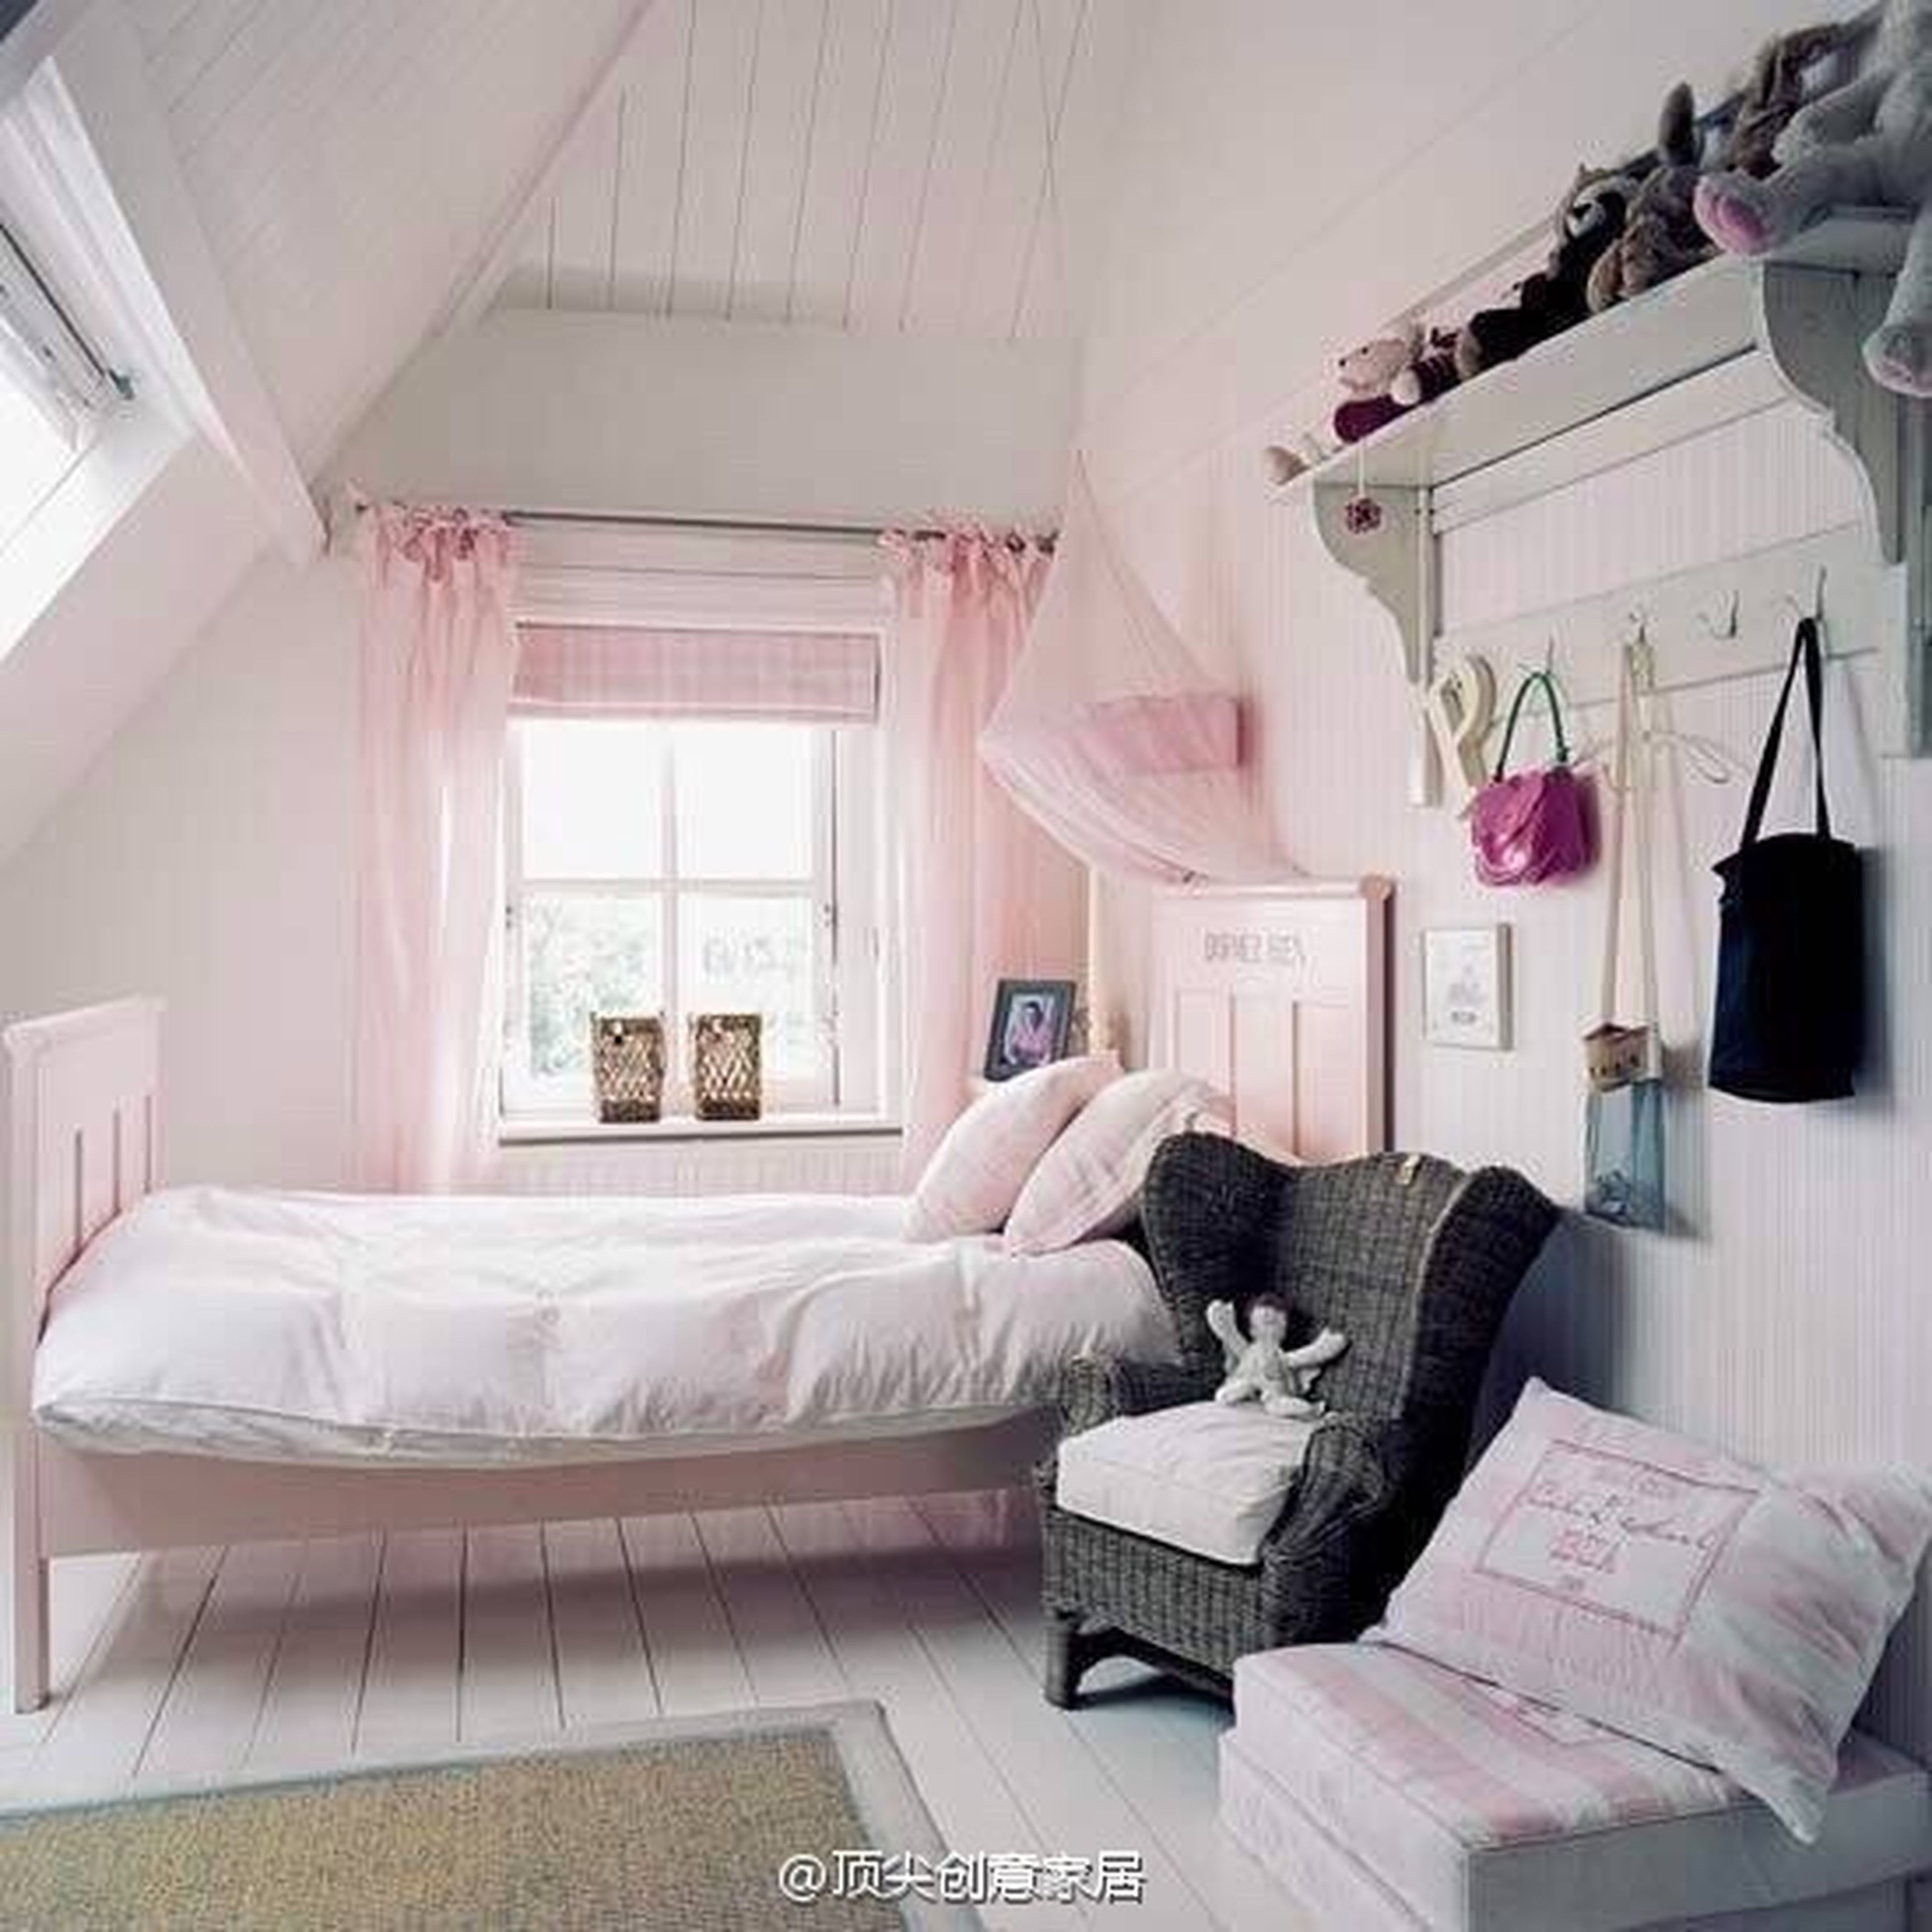 indoors, bed, relaxation, home interior, bedroom, chair, sofa, sitting, table, one person, domestic life, domestic room, book, pillow, lying down, resting, desk, living room, sleeping, comfortable